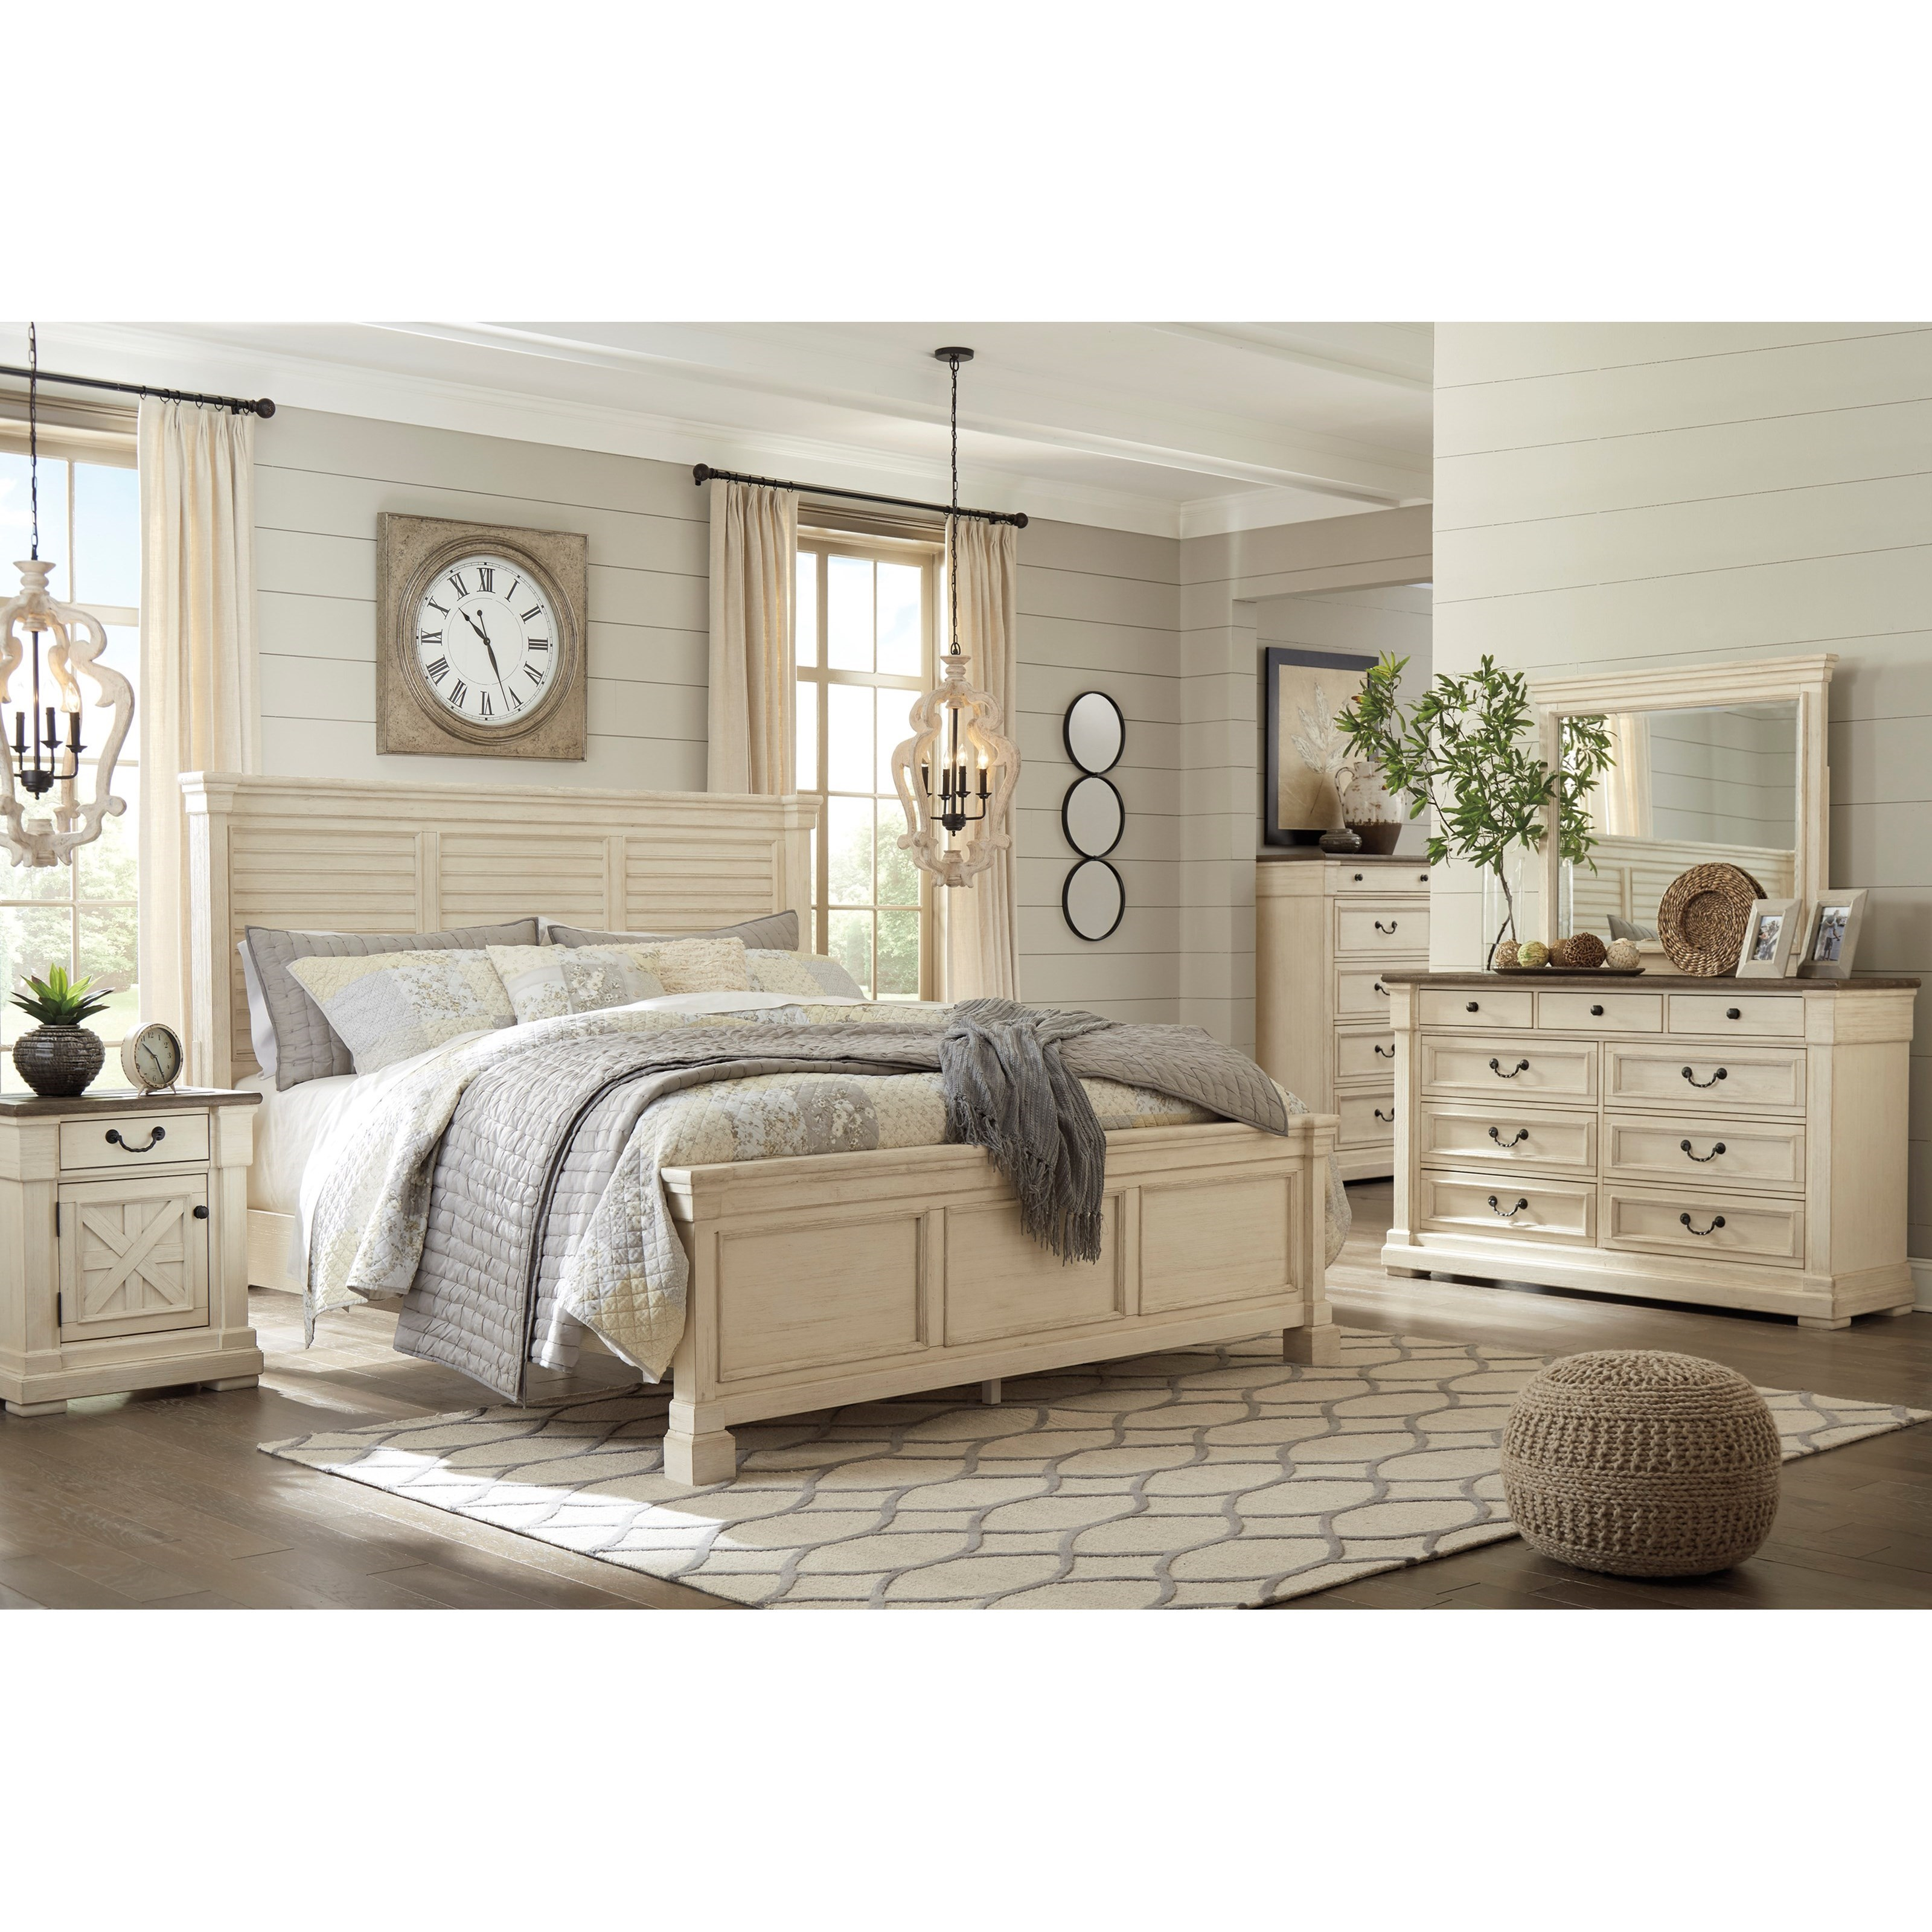 Bolanburg Queen Bedroom Group by Signature Design by Ashley at Northeast Factory Direct